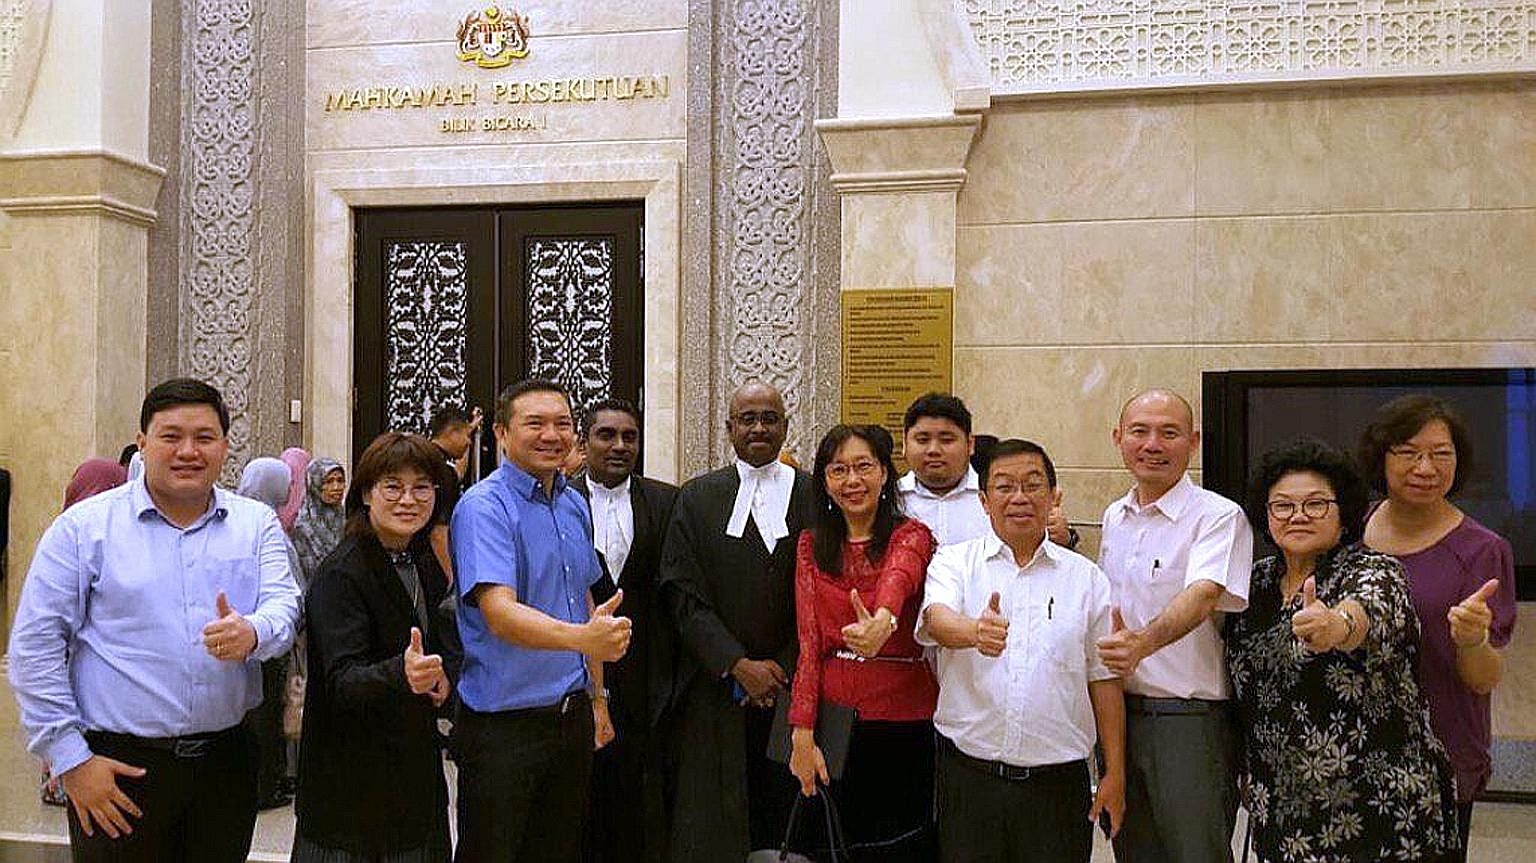 DAP MP Teresa Kok (in red) with her lawyers and supporters outside the Federal Court in Putrajaya yesterday. In 2008, she was held under the ISA for allegedly taking part in activities that could cause racial tension.